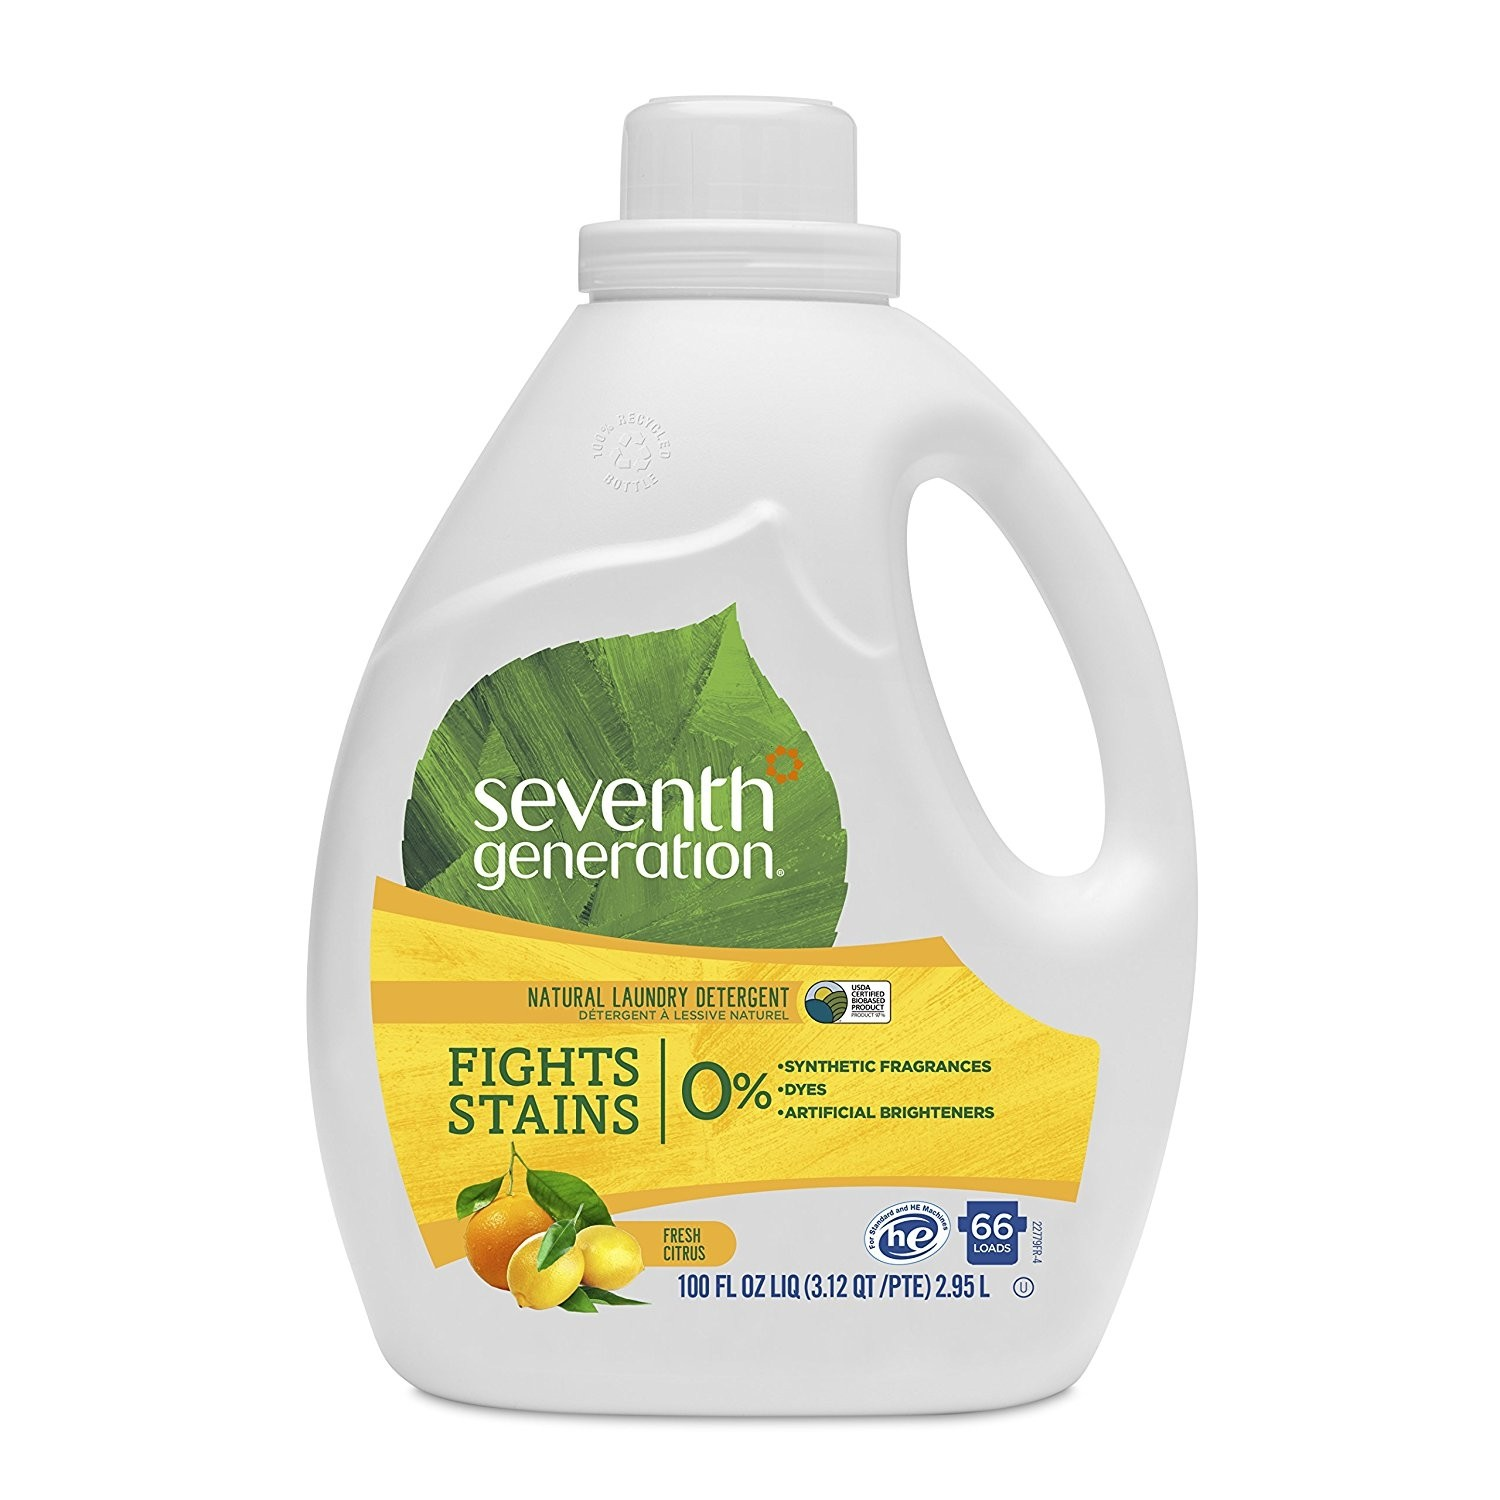 Seventh Generation Natural Laundry Detergent, Fresh Citrus Breeze, 100 Oz